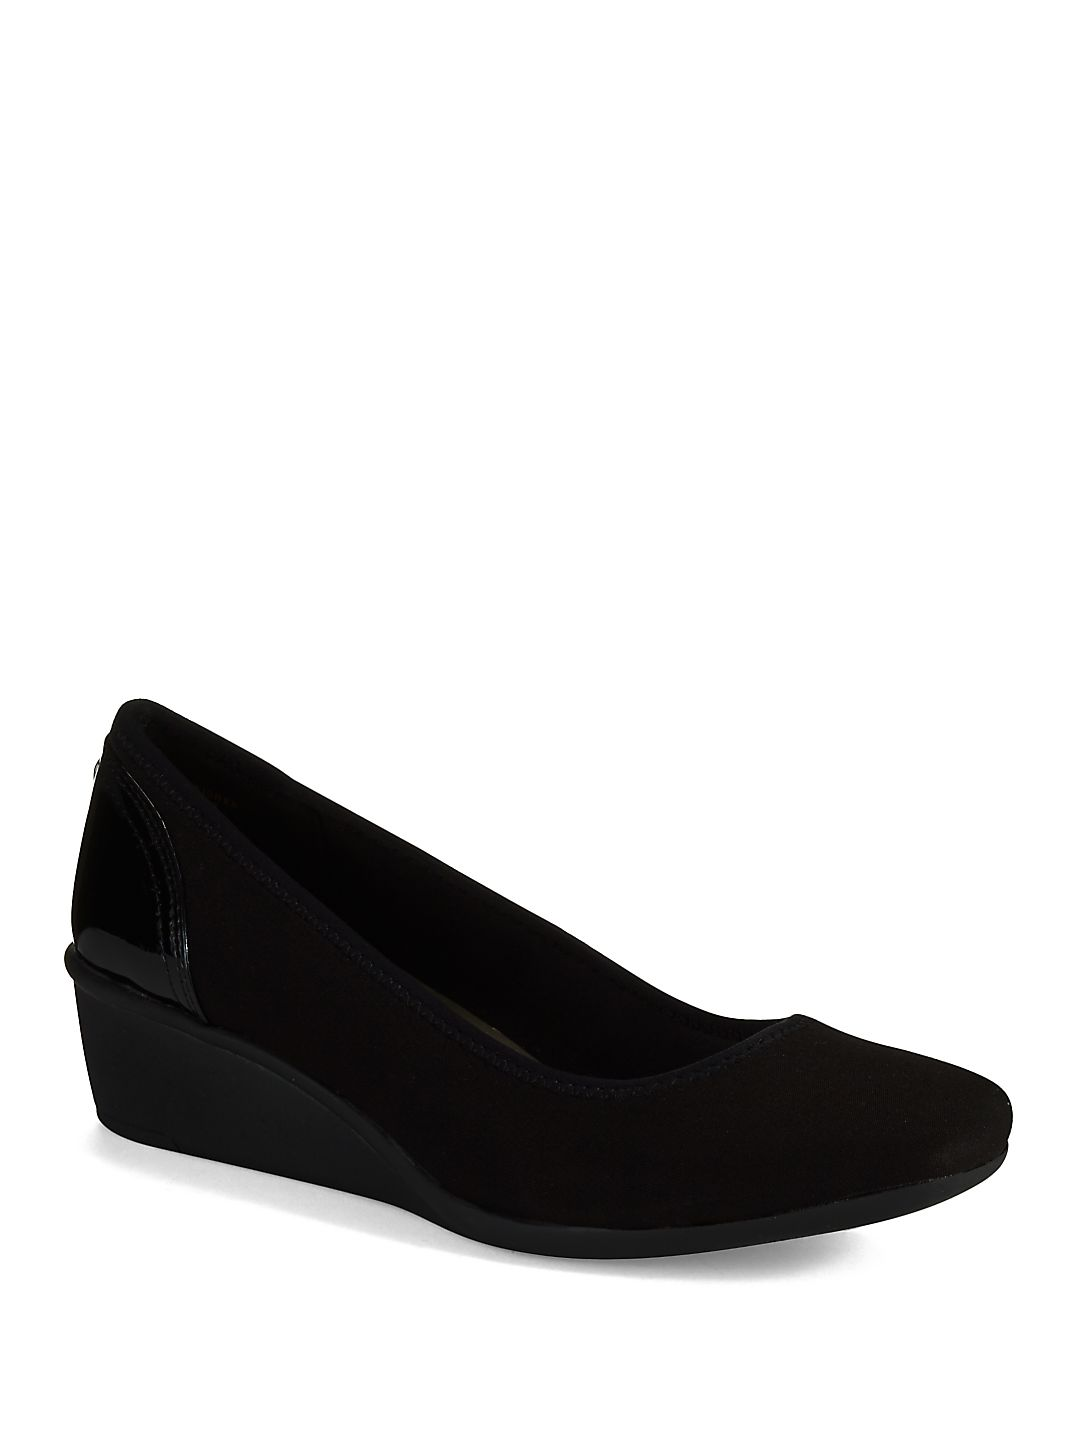 Wisher Wedges